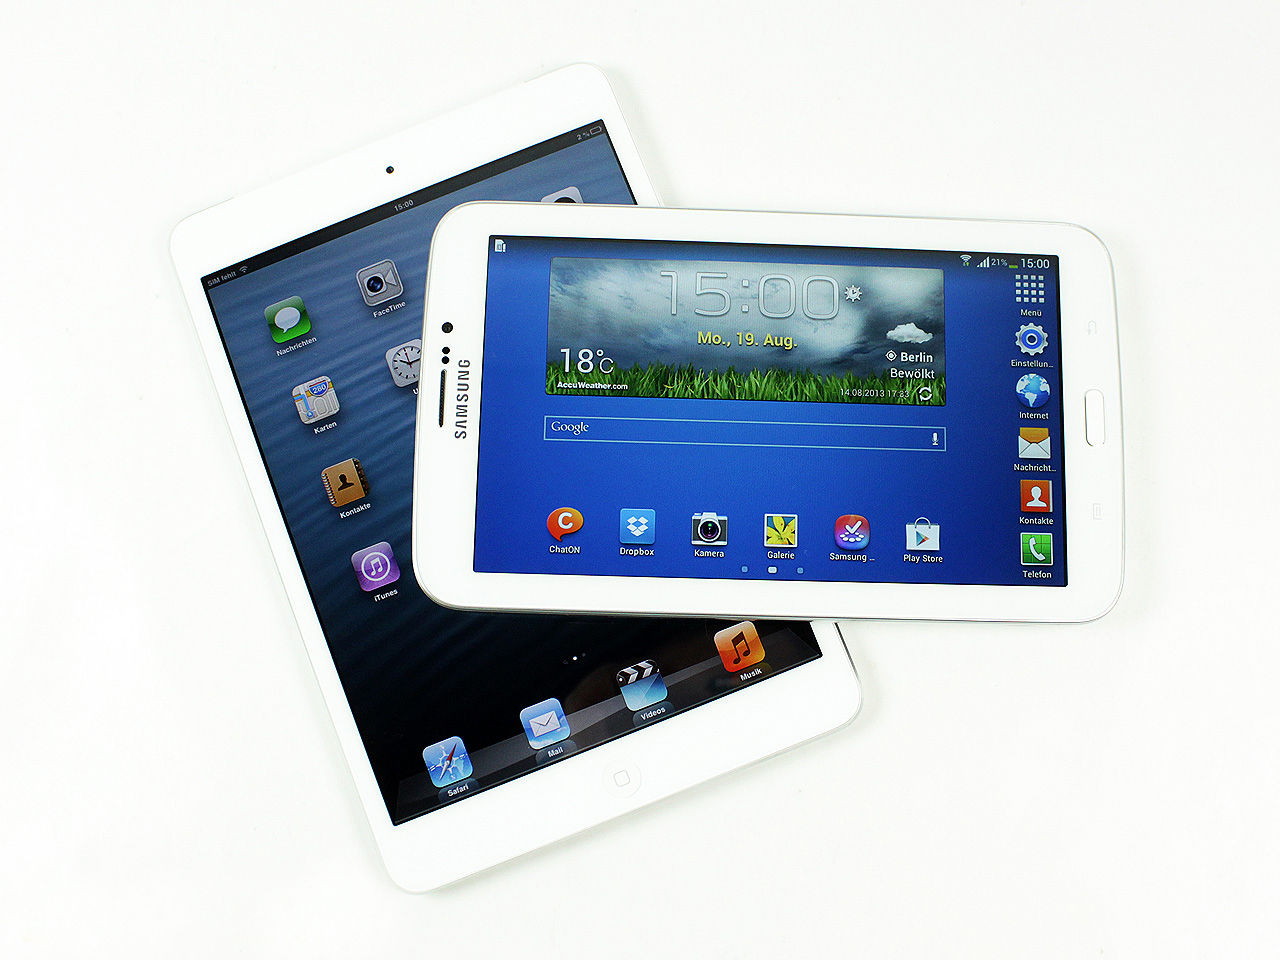 samsung-galaxy-tab-3-7.0-vs.-apple-ipad-mini-19.jpg